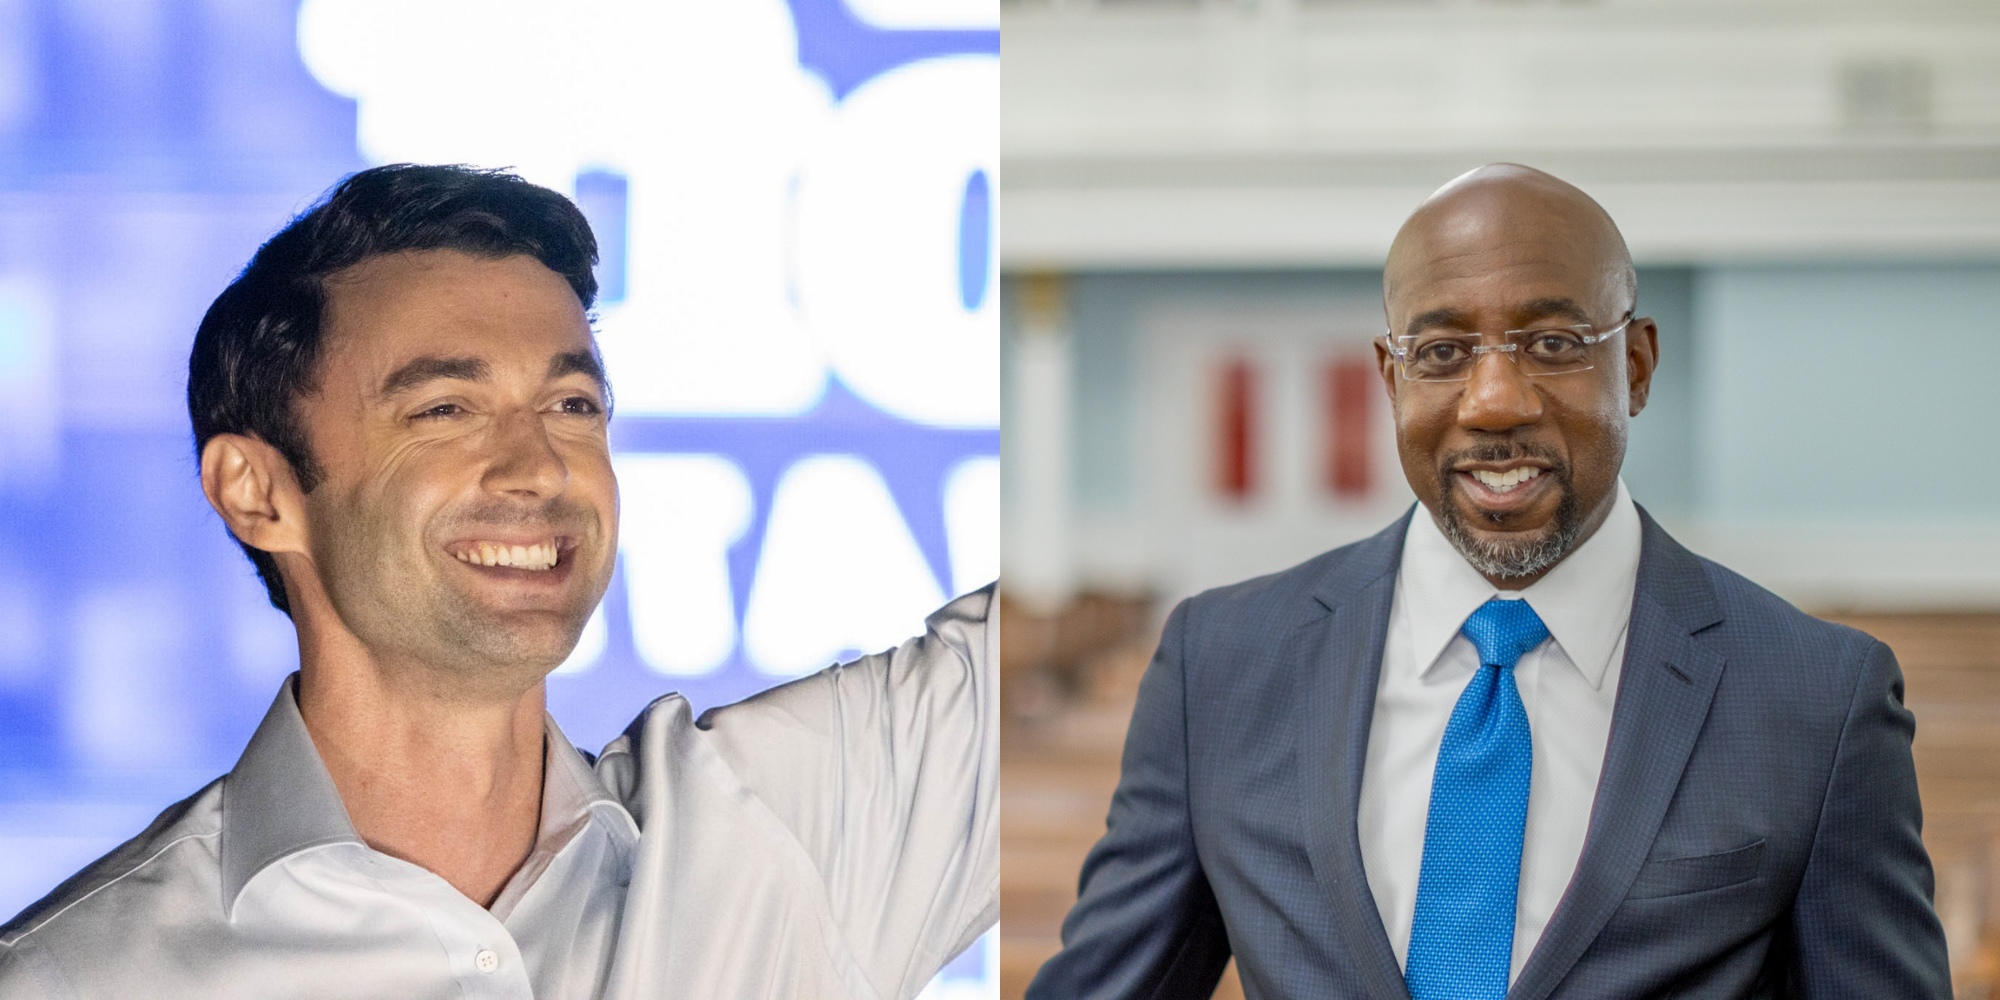 Georgia Democratic candidates Jon Ossoff and Reverend Raphael Warnock